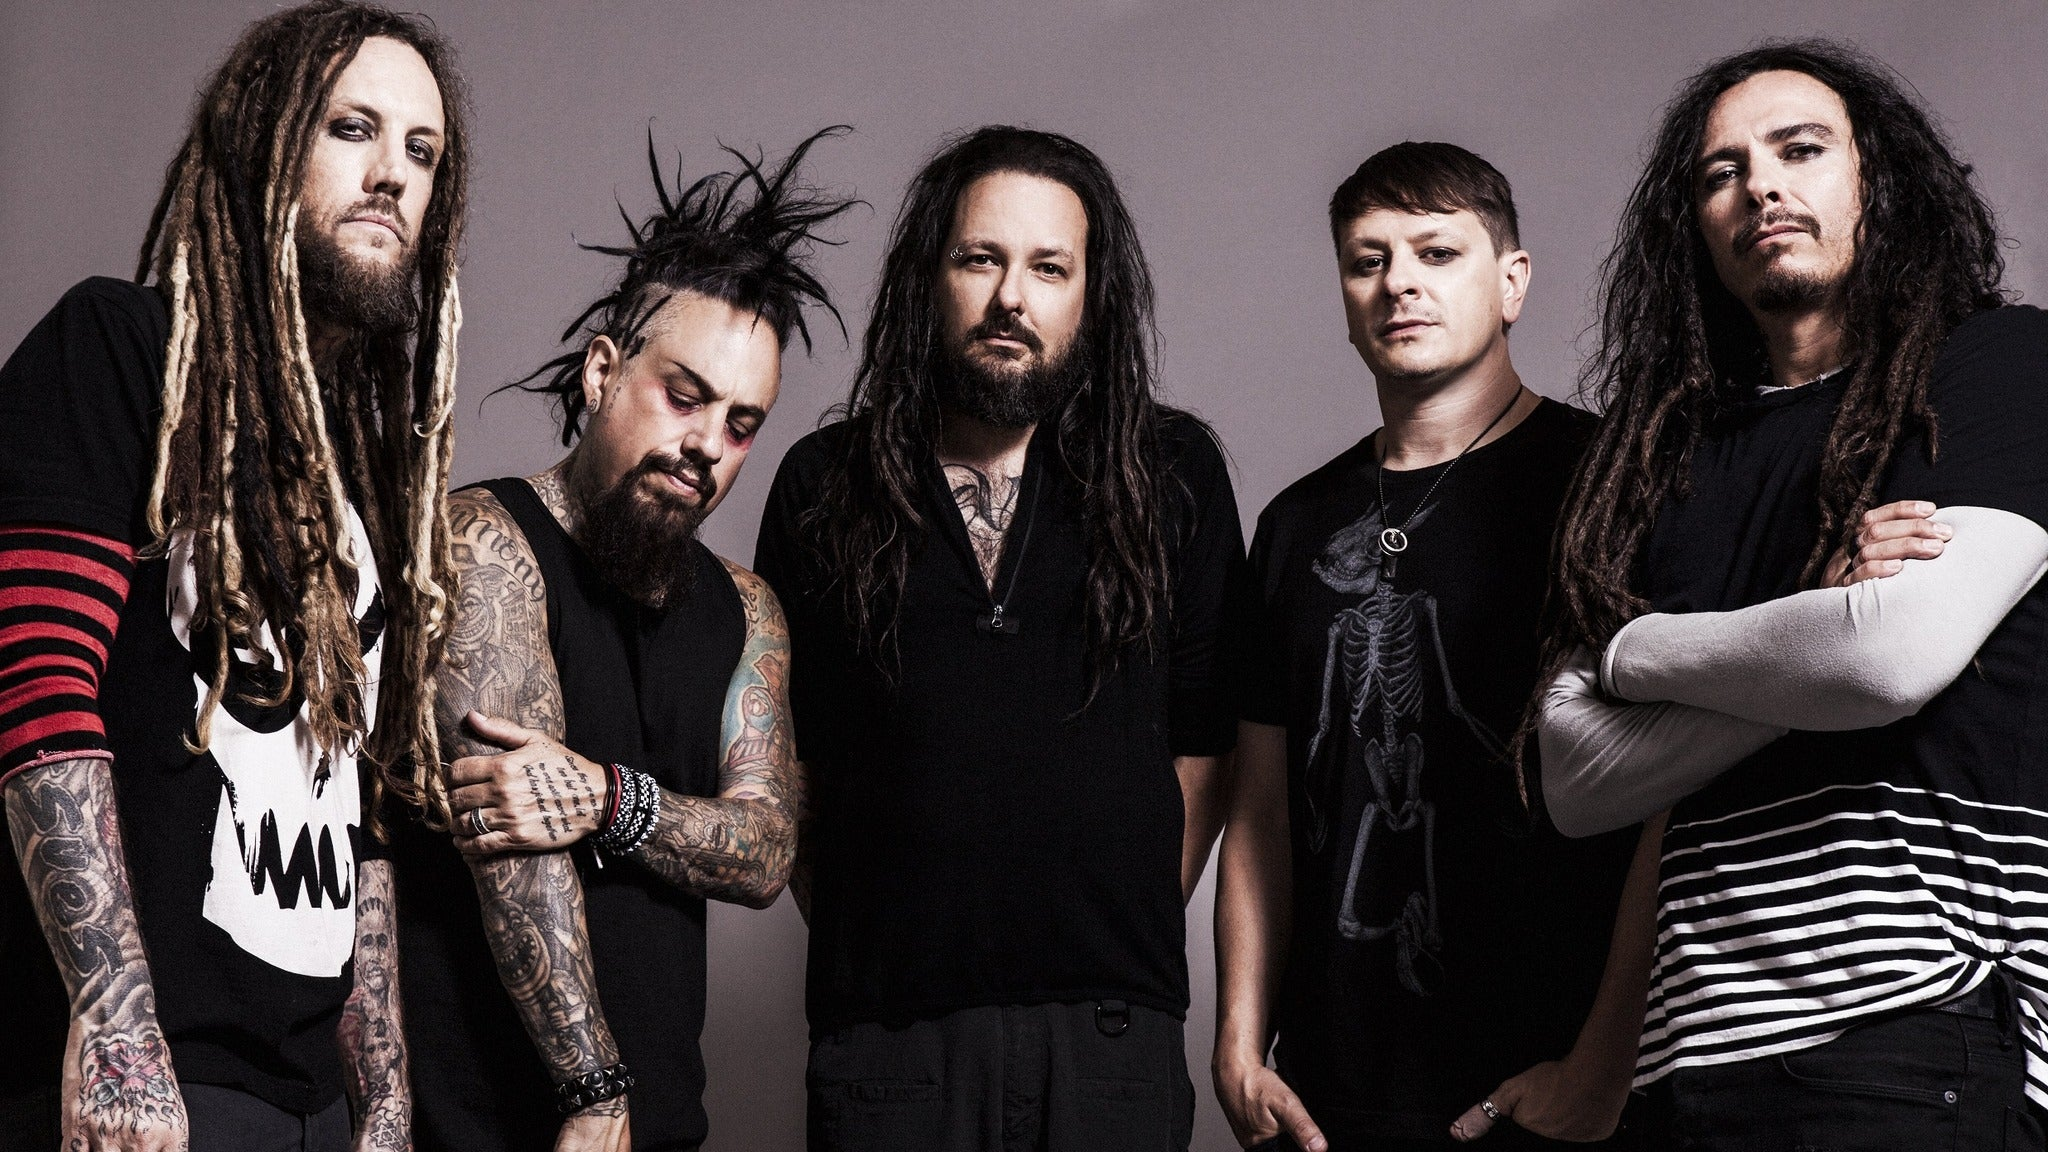 105.7 The Point Welcomes: Korn at The Pageant